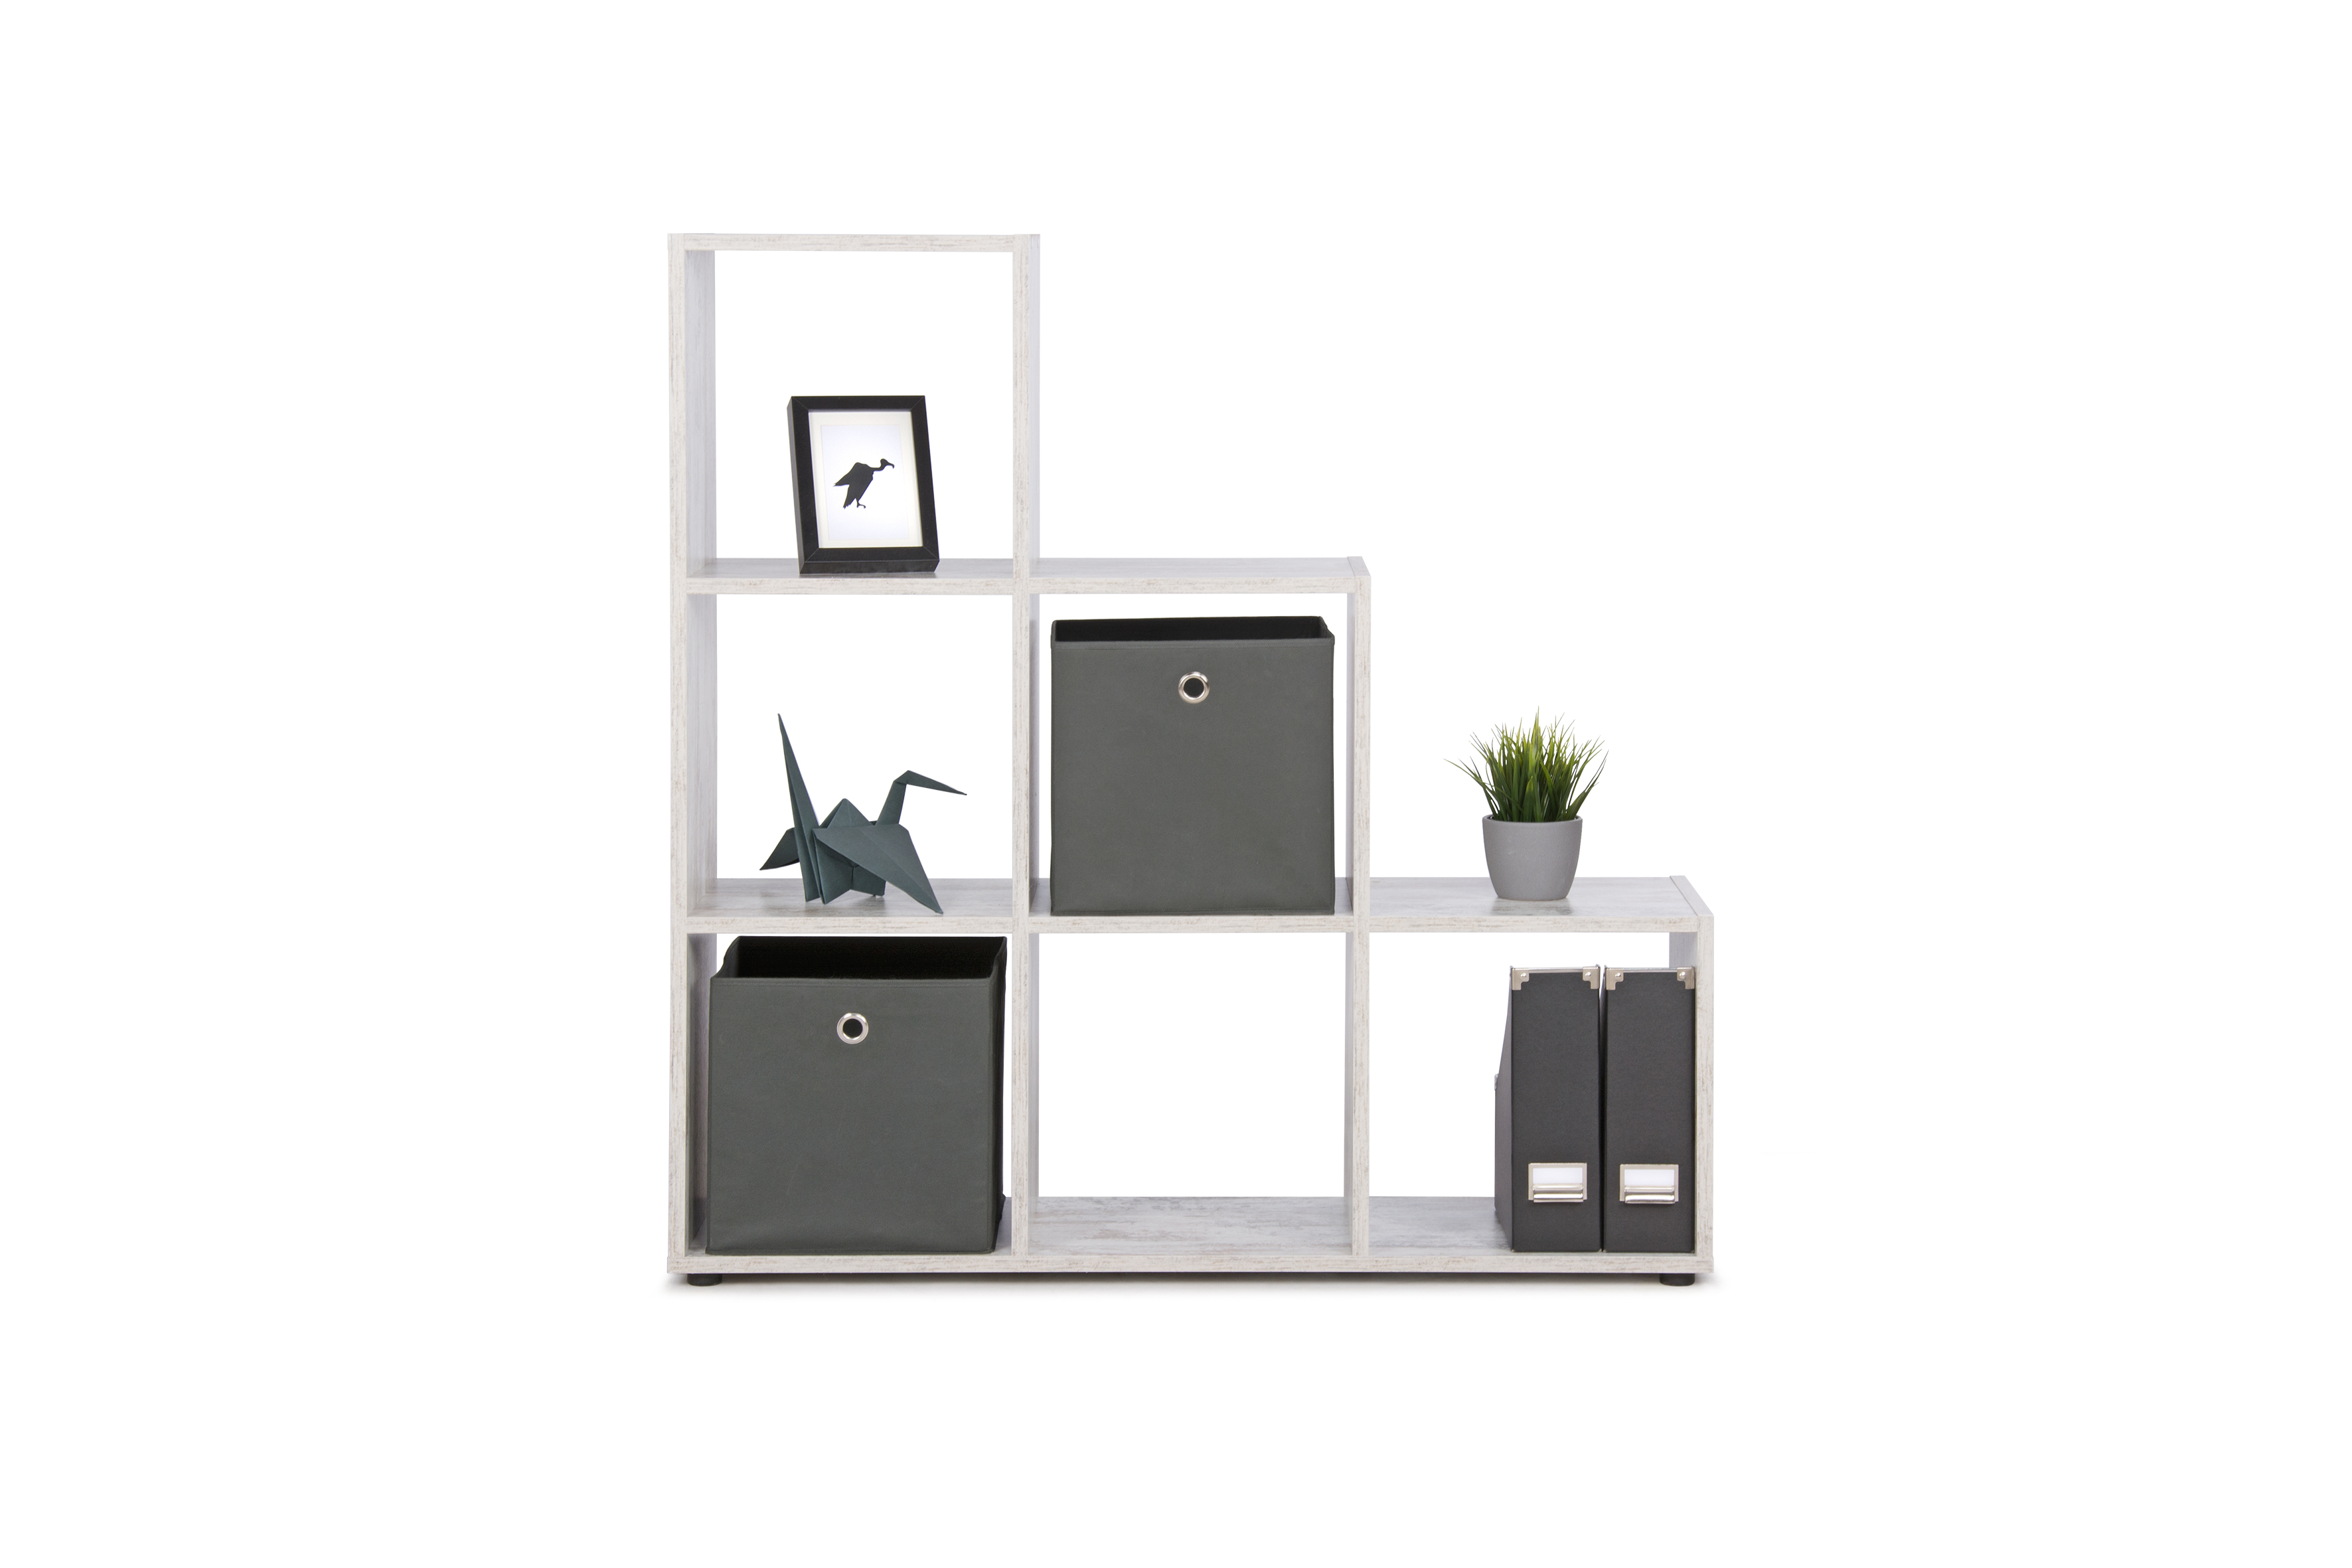 regale wohnzimmerm bel wohnen hofmeister online shop. Black Bedroom Furniture Sets. Home Design Ideas